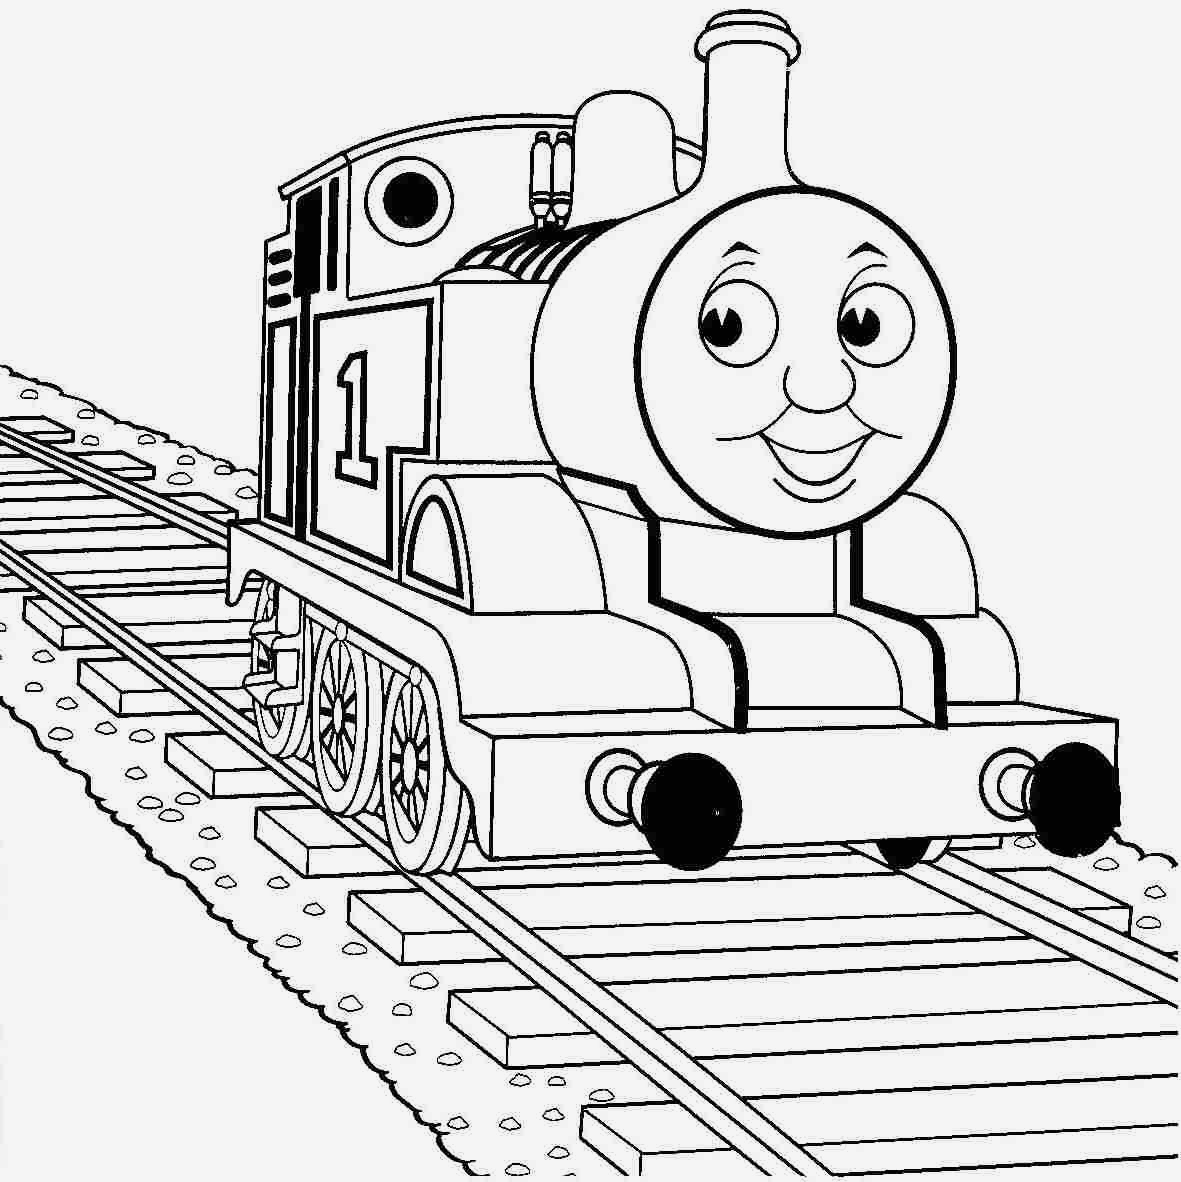 steam train coloring pages Collection-Thomas the Train Coloring Pages Best Easy 41 Coloring Pages Thomas the Train Printable Thomas the Train 10-g